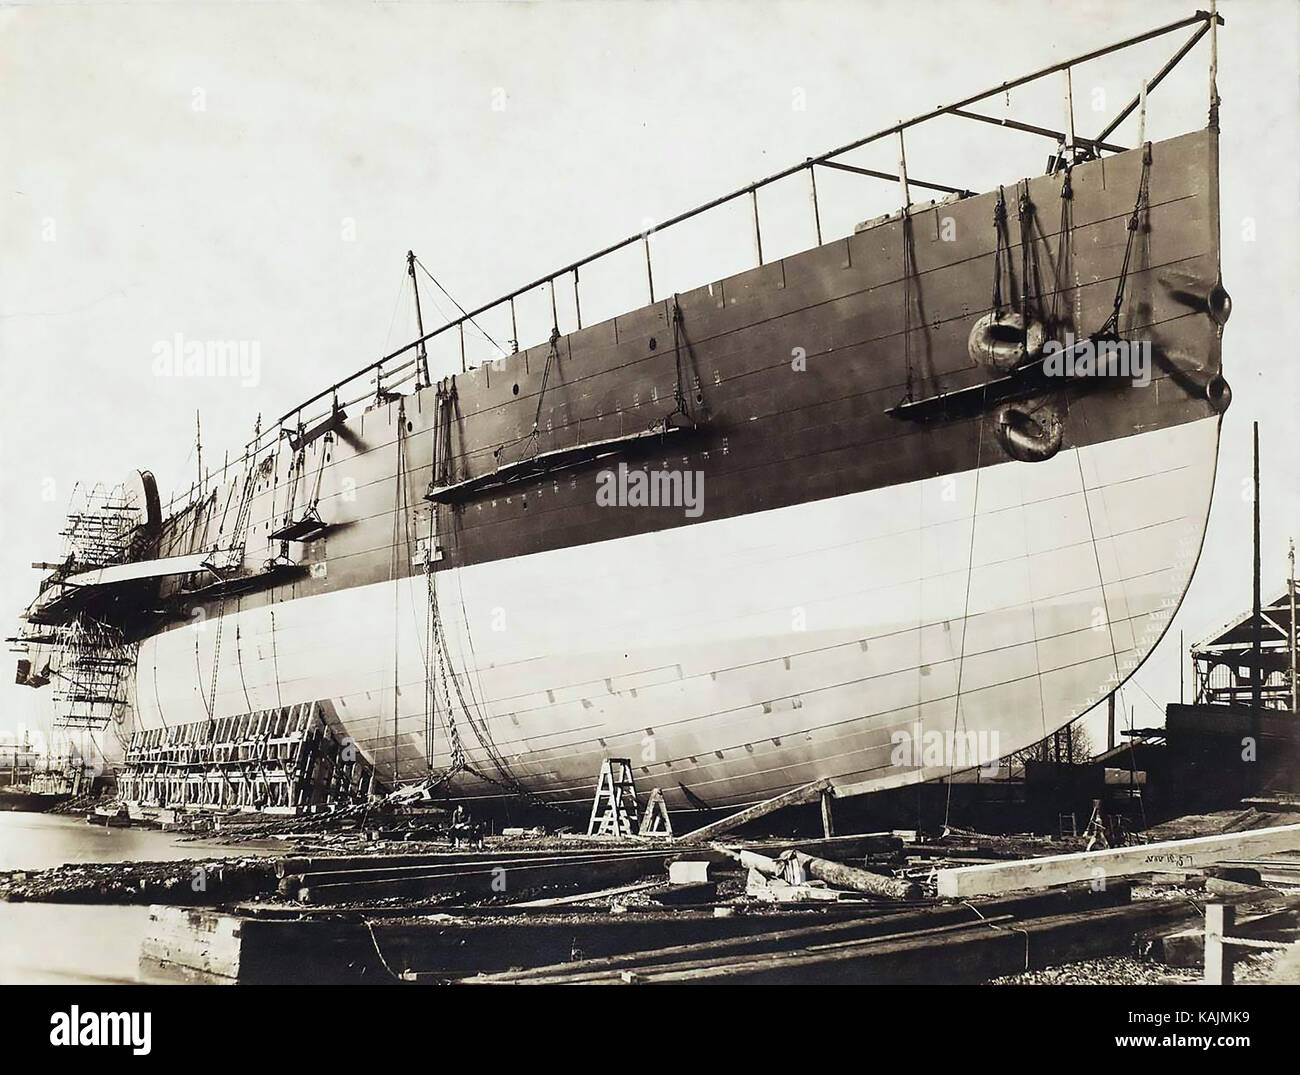 THE GREAT EASTERN ship designed by Brunel under construction in 1857. Photo: Robert Howlett - Stock Image